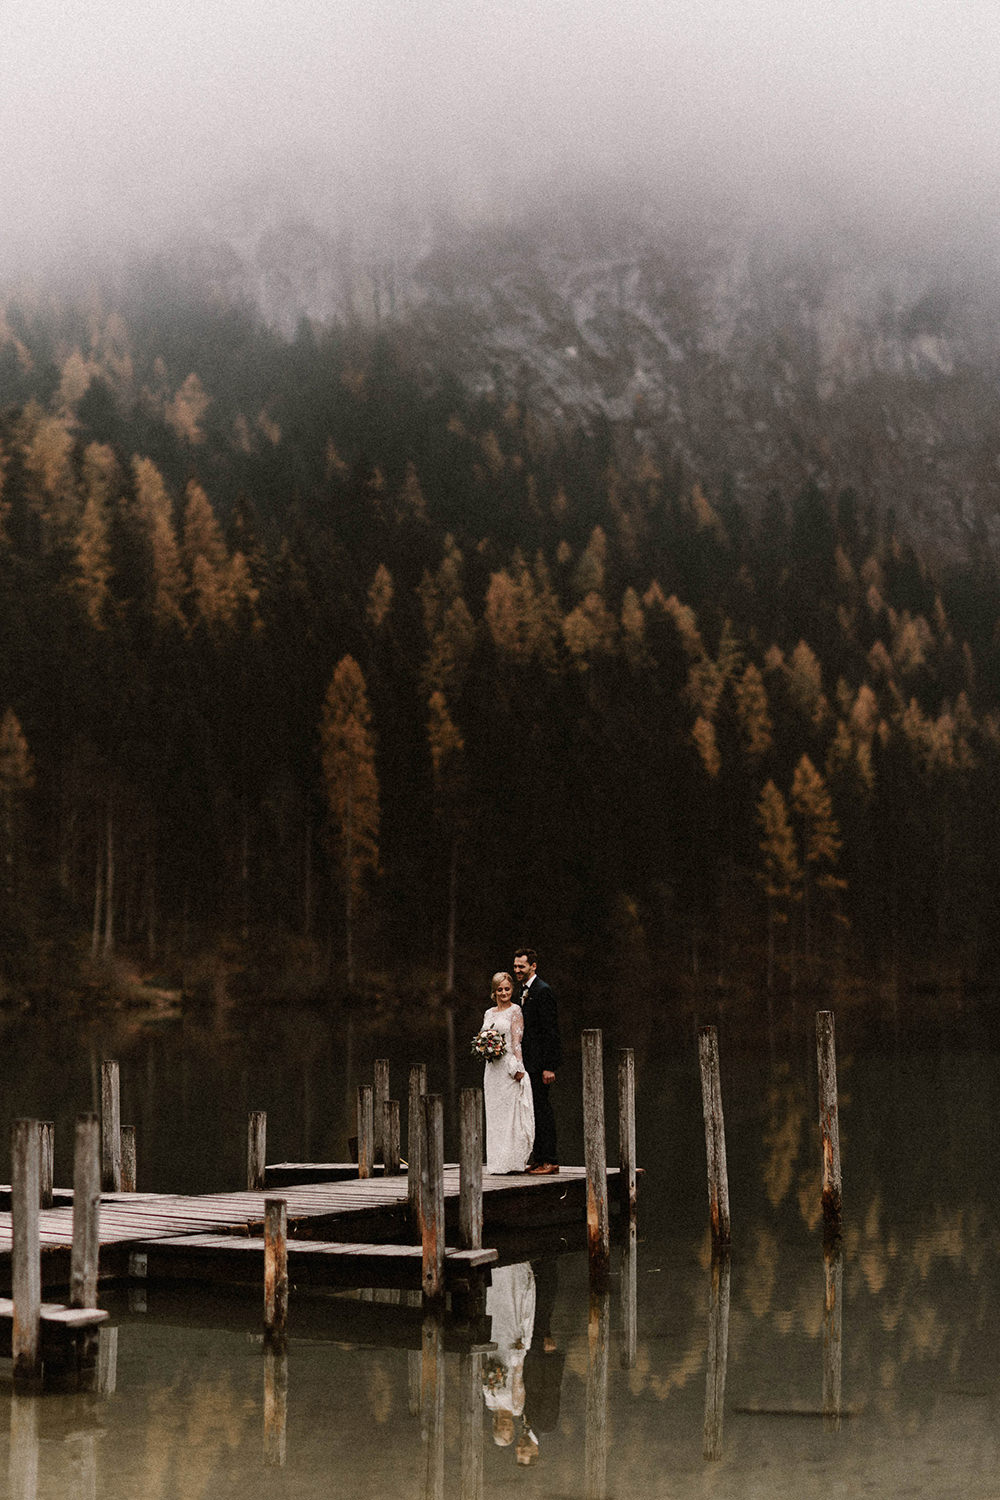 275 Stunning And Inspirational Wedding Images To Look At!